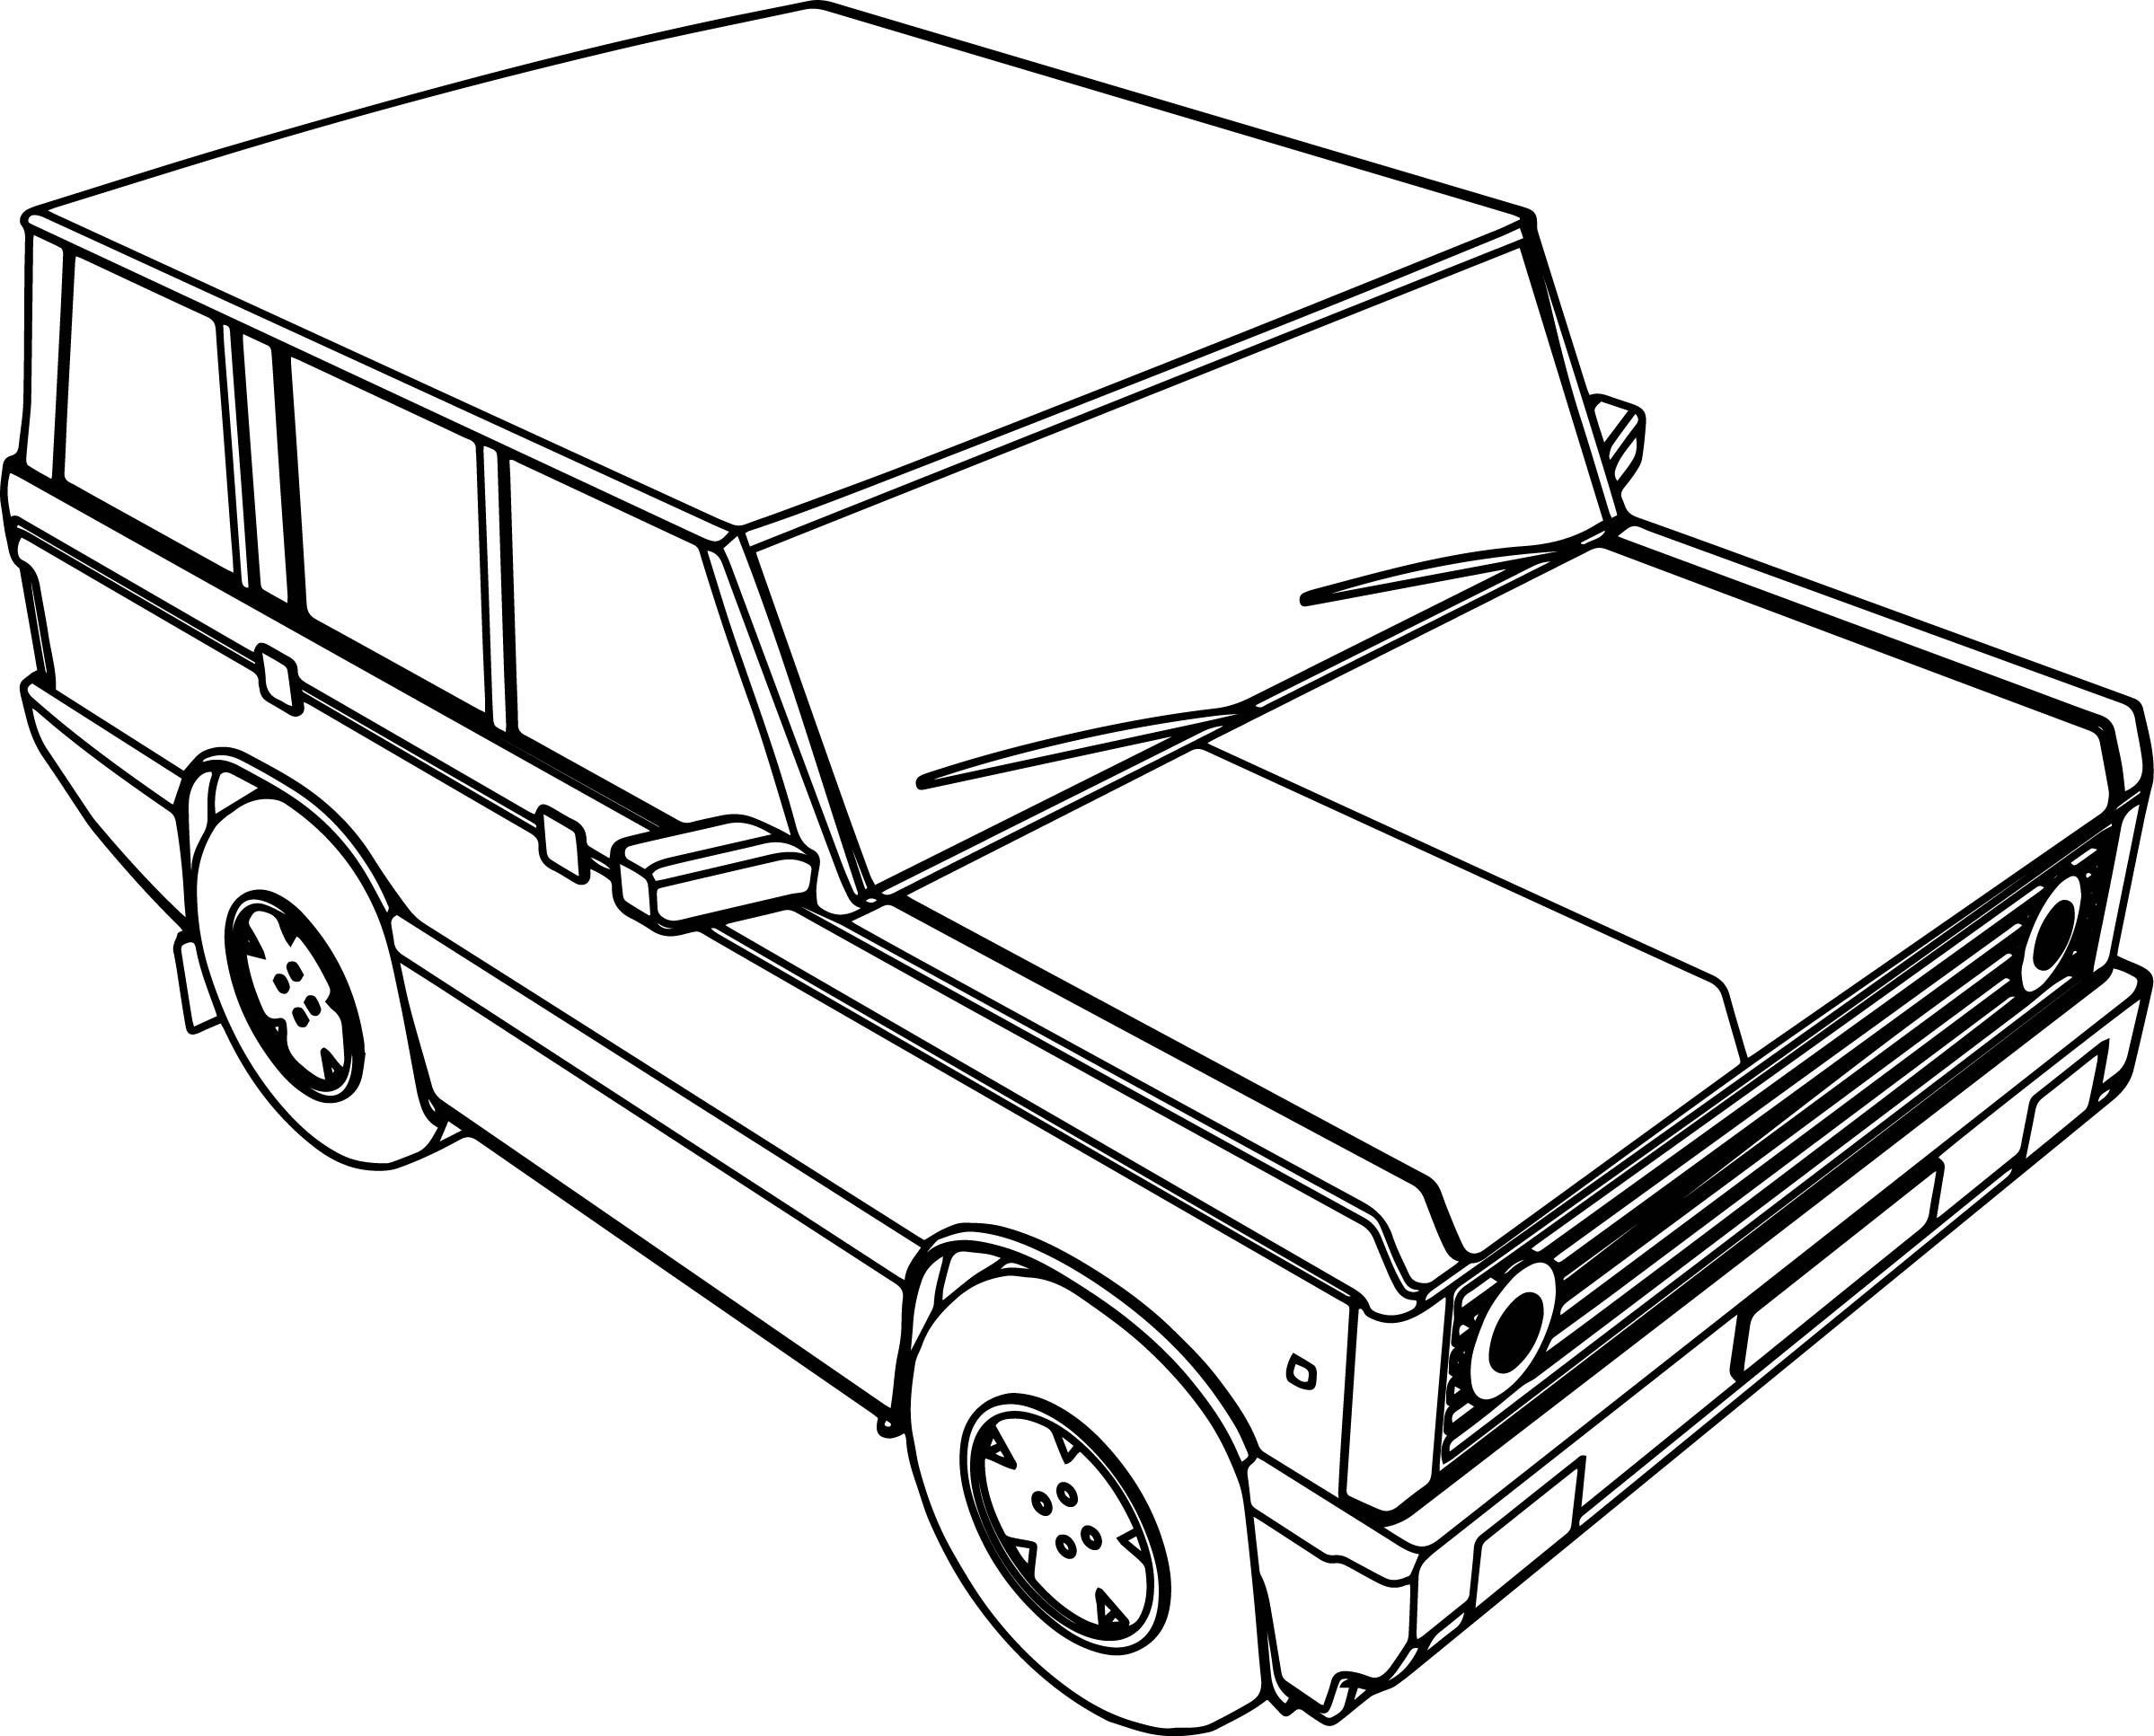 Building Truck Line Drawing Coloring Page furthermore FSO Syrena Prototyp also Autos 45 furthermore Automobili moreover Mazda Cx 9. on miata coloring pages